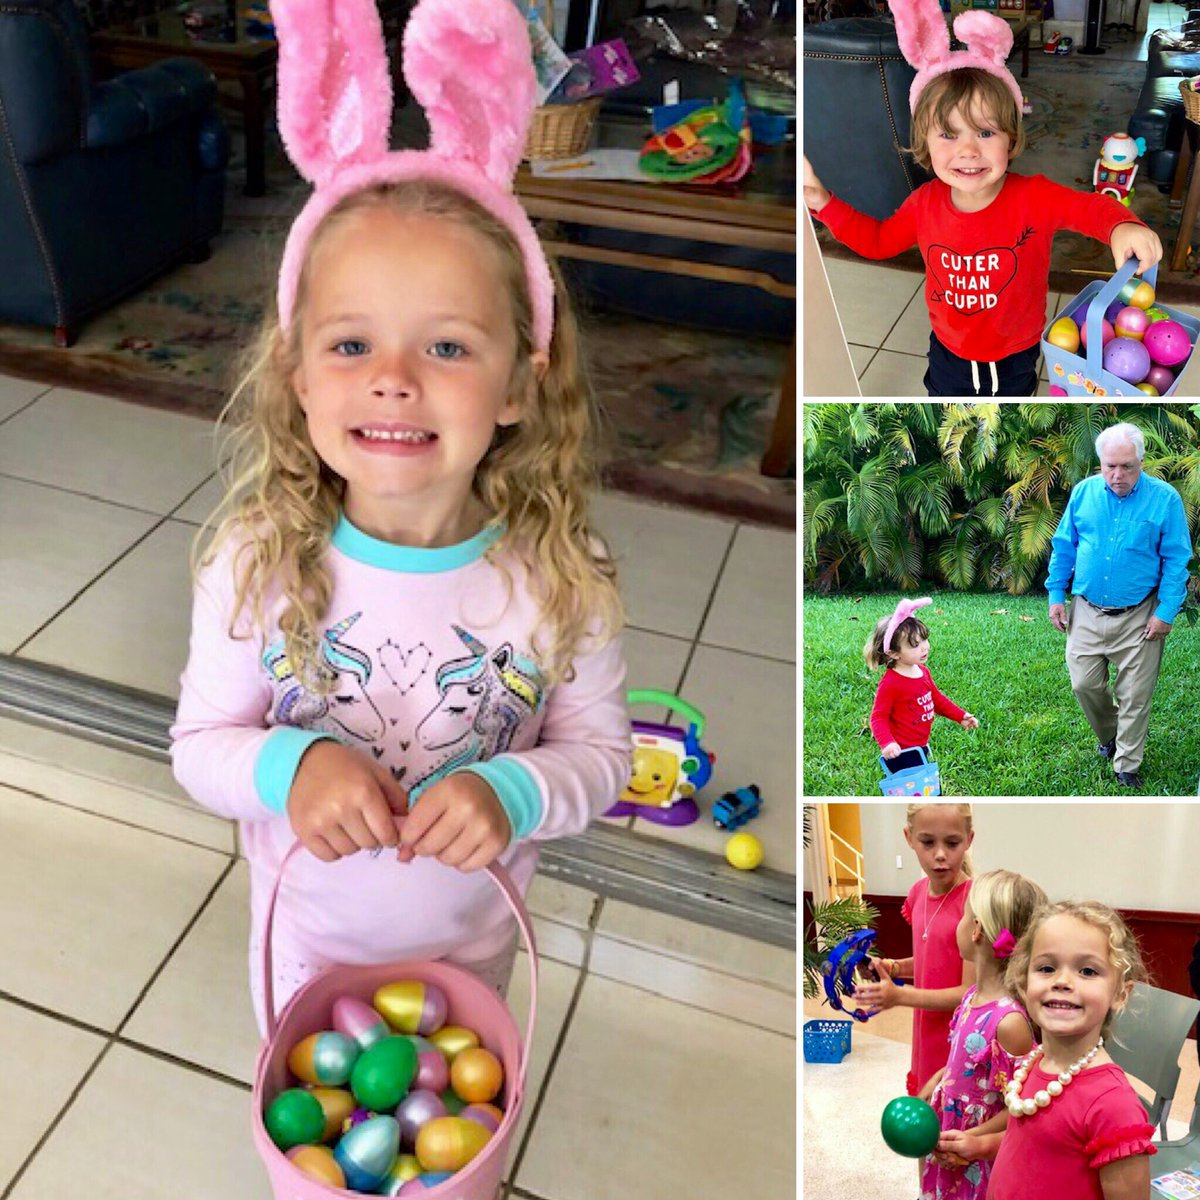 Oh my goodness! A joyous #EasterSunday with los nietos!   From our family to yours, Happy Easter & many blessings to all in #SoFla who celebrate.